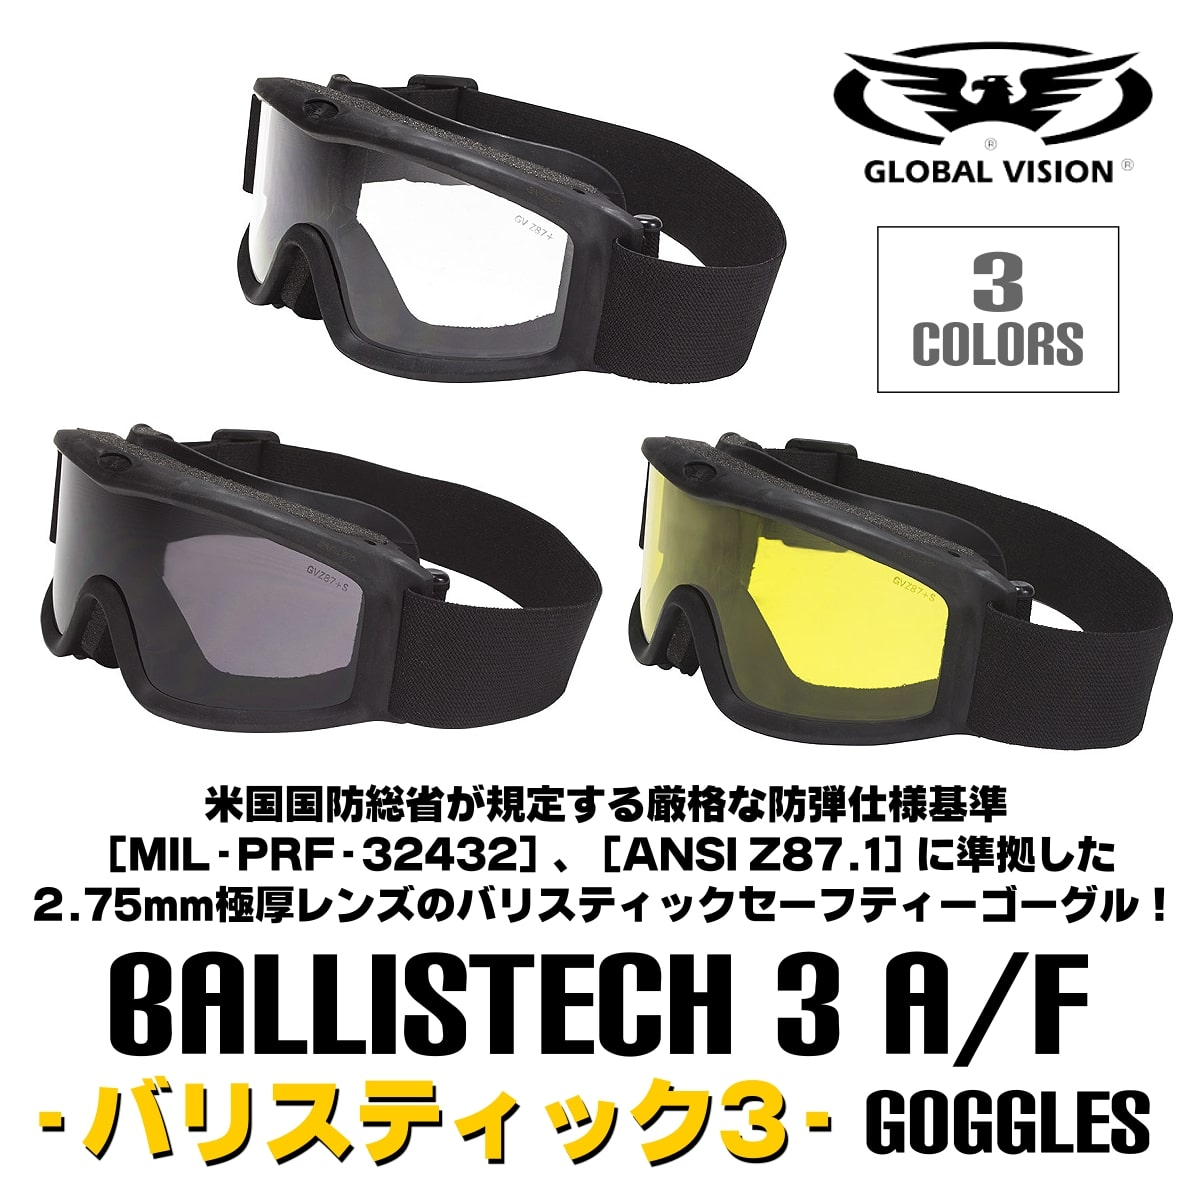 GLOBAL VISION pole thickness 2 75mm bulletproof lens goggles sunglasses  Ballistech 3 A/F Goggles mil standard MIL-PRF-32432 ANSI Z87 1 conformity